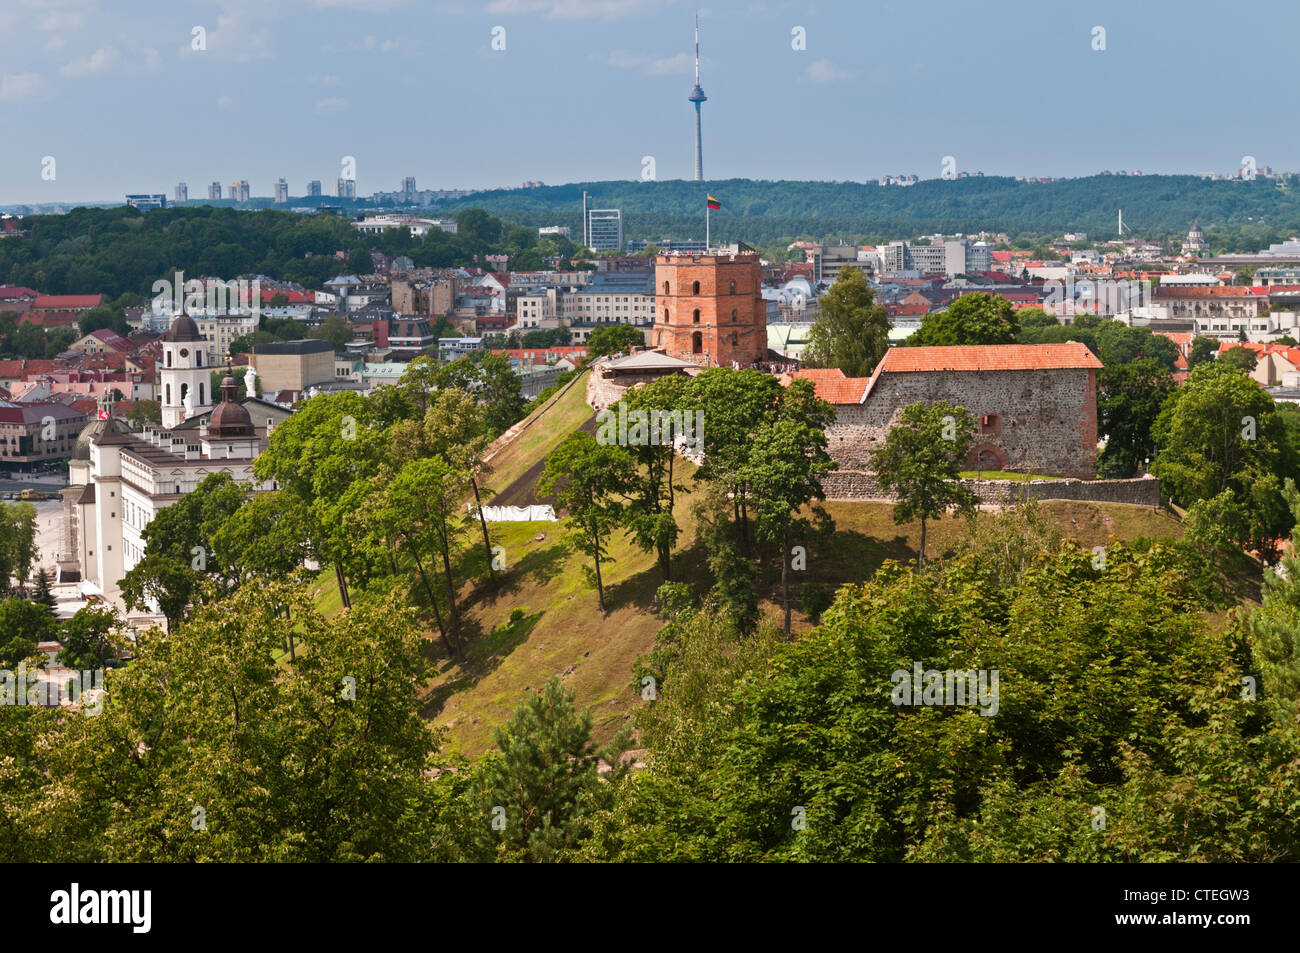 City view to Upper Castle Gediminas Hill with TV Tower in the distance Vilnius Lithuania Stock Photo